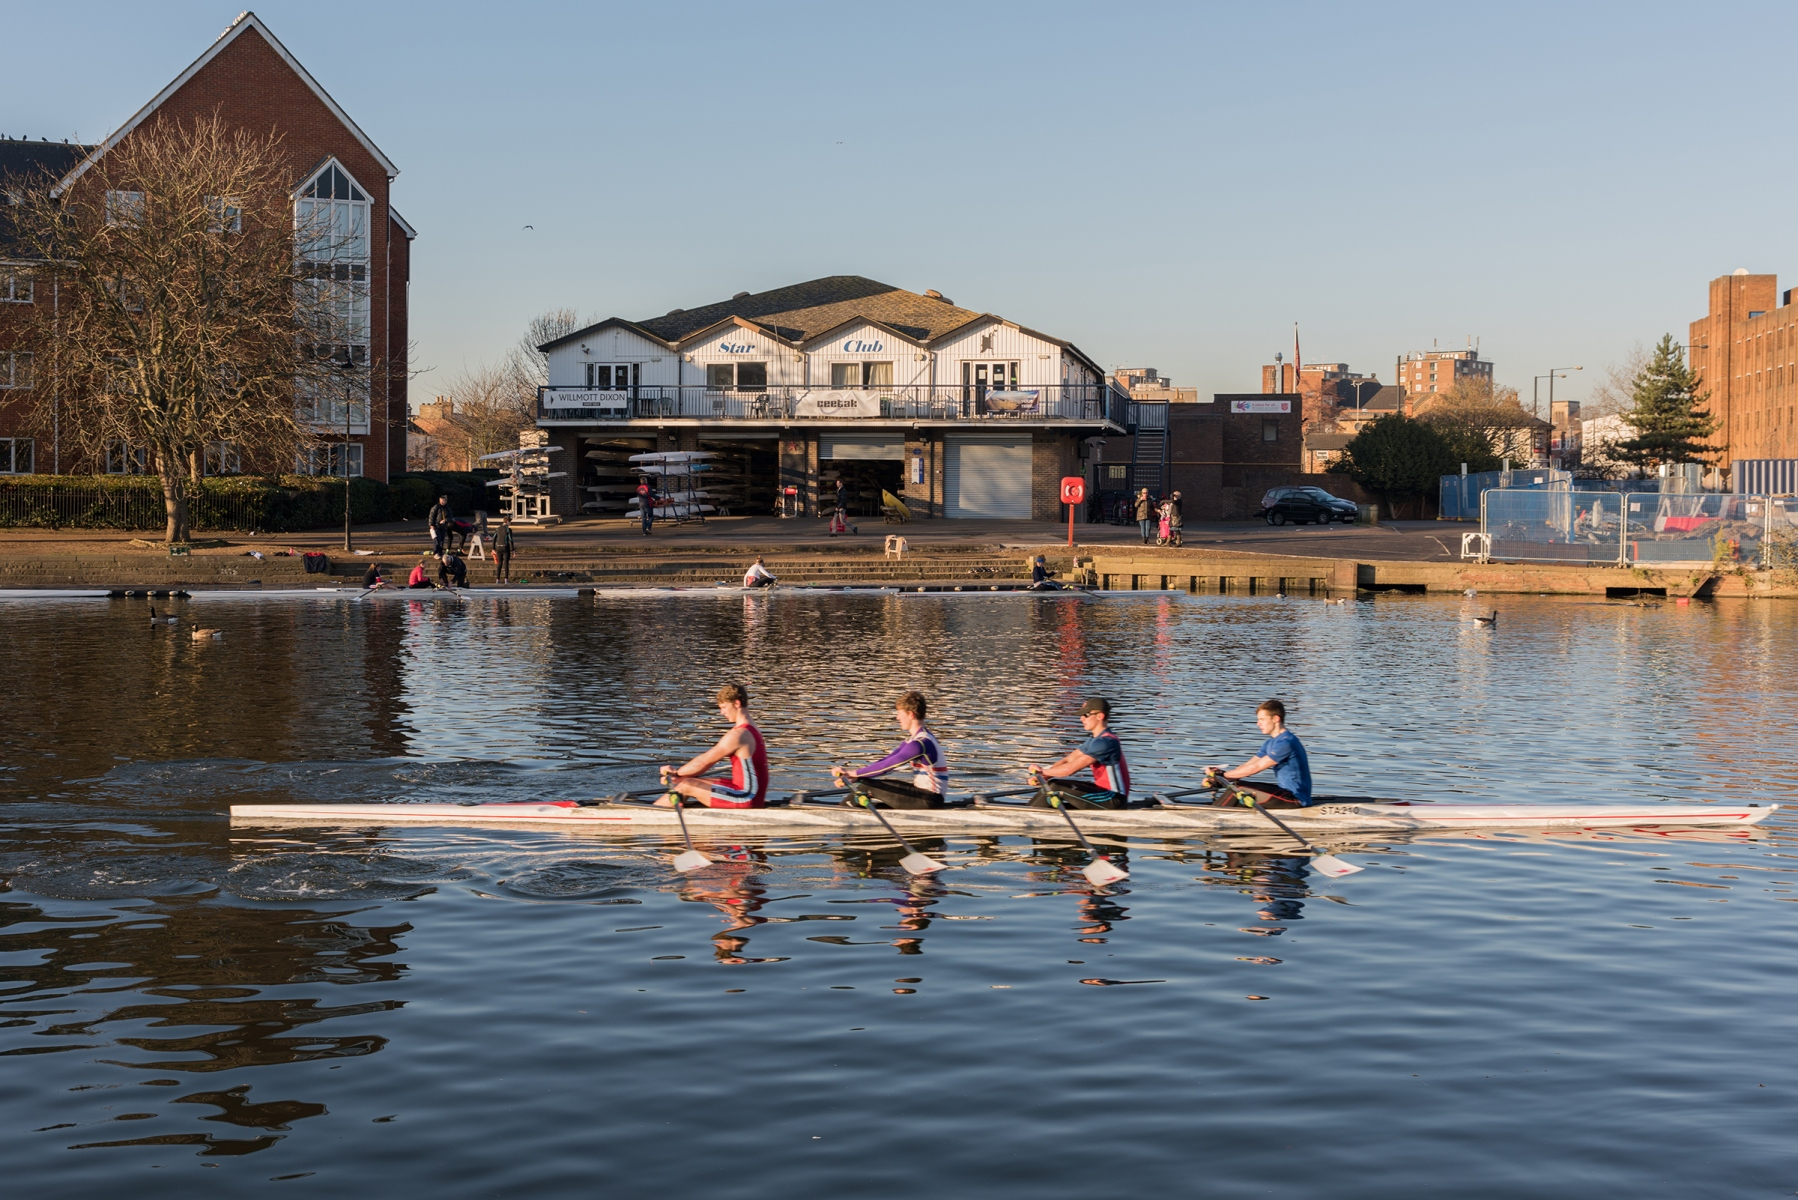 Bedford Rowing Club members on River Great Ouse, Bedford, Bedfordshire